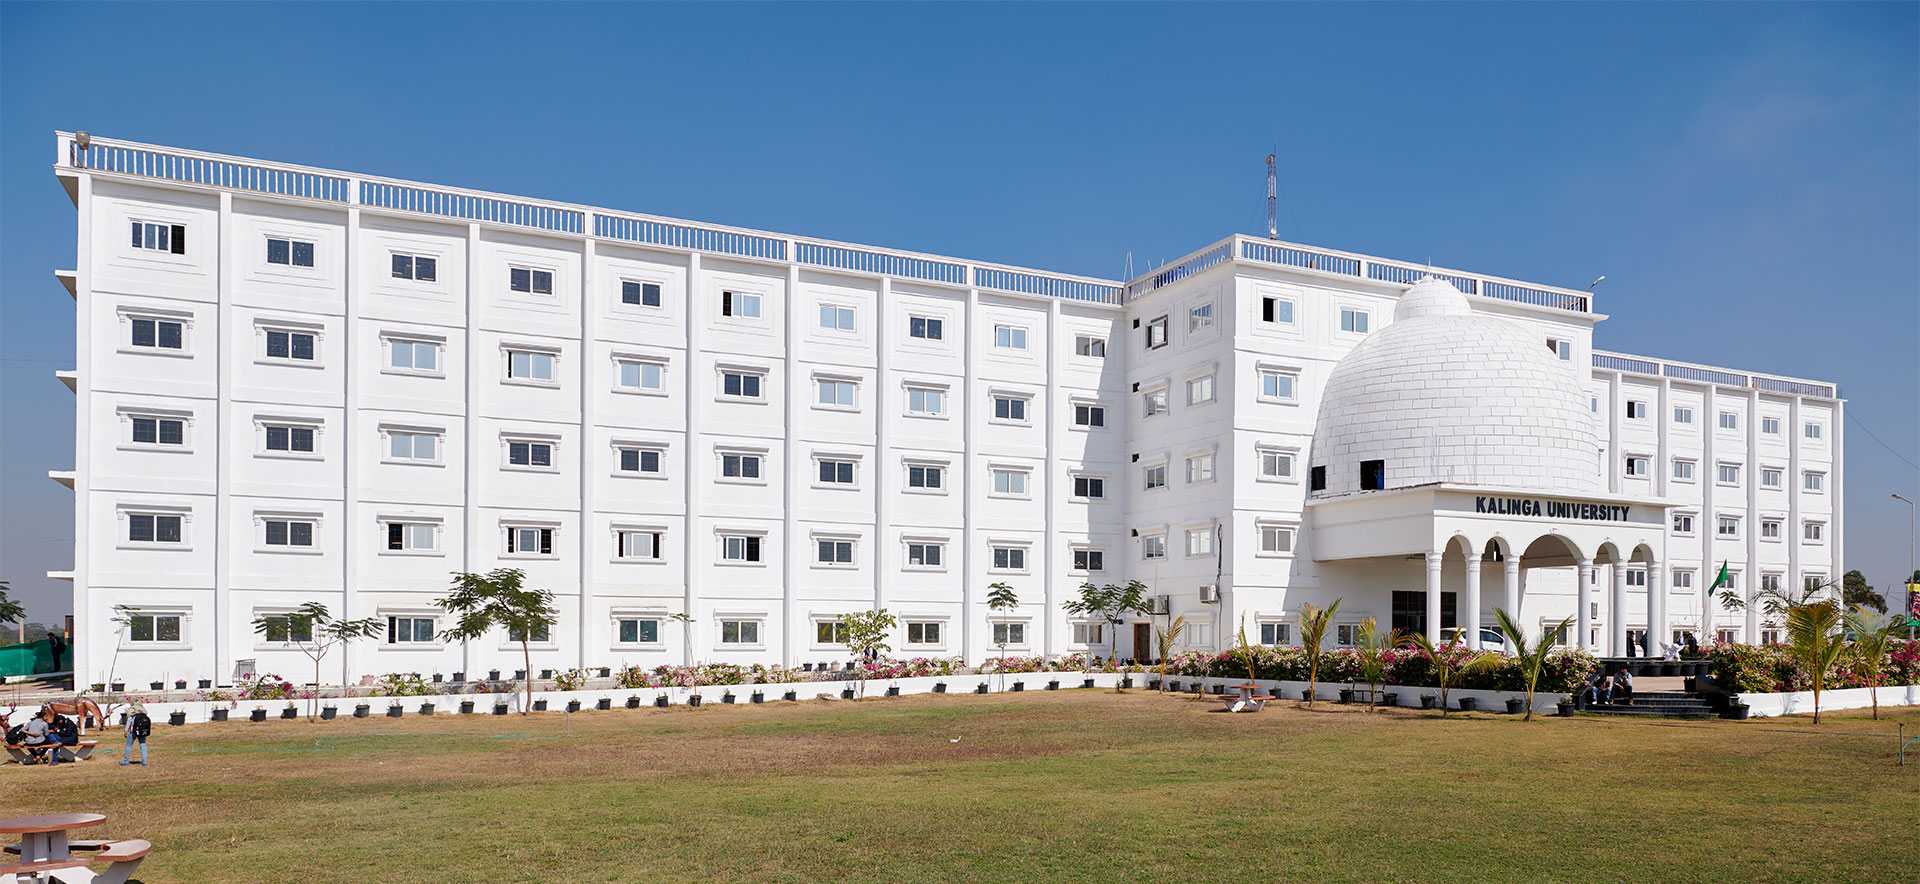 Kalinga University, Chhattisgarh